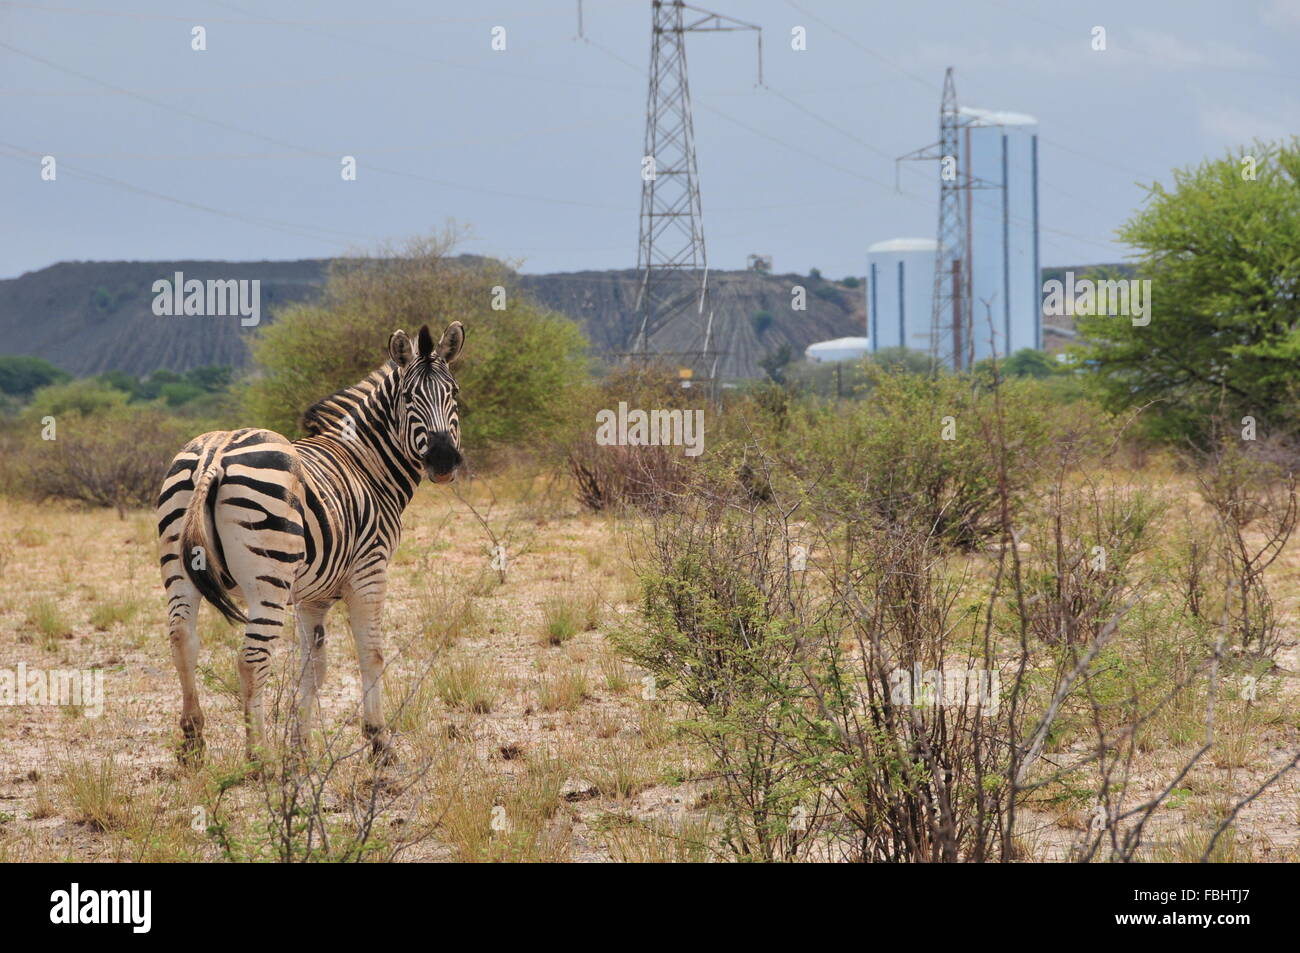 Jwaneng, Botswana. 16th Jan, 2016. A zebra is seen in Jwana Game Park within the boundaries of the Jwaneng mining Stock Photo